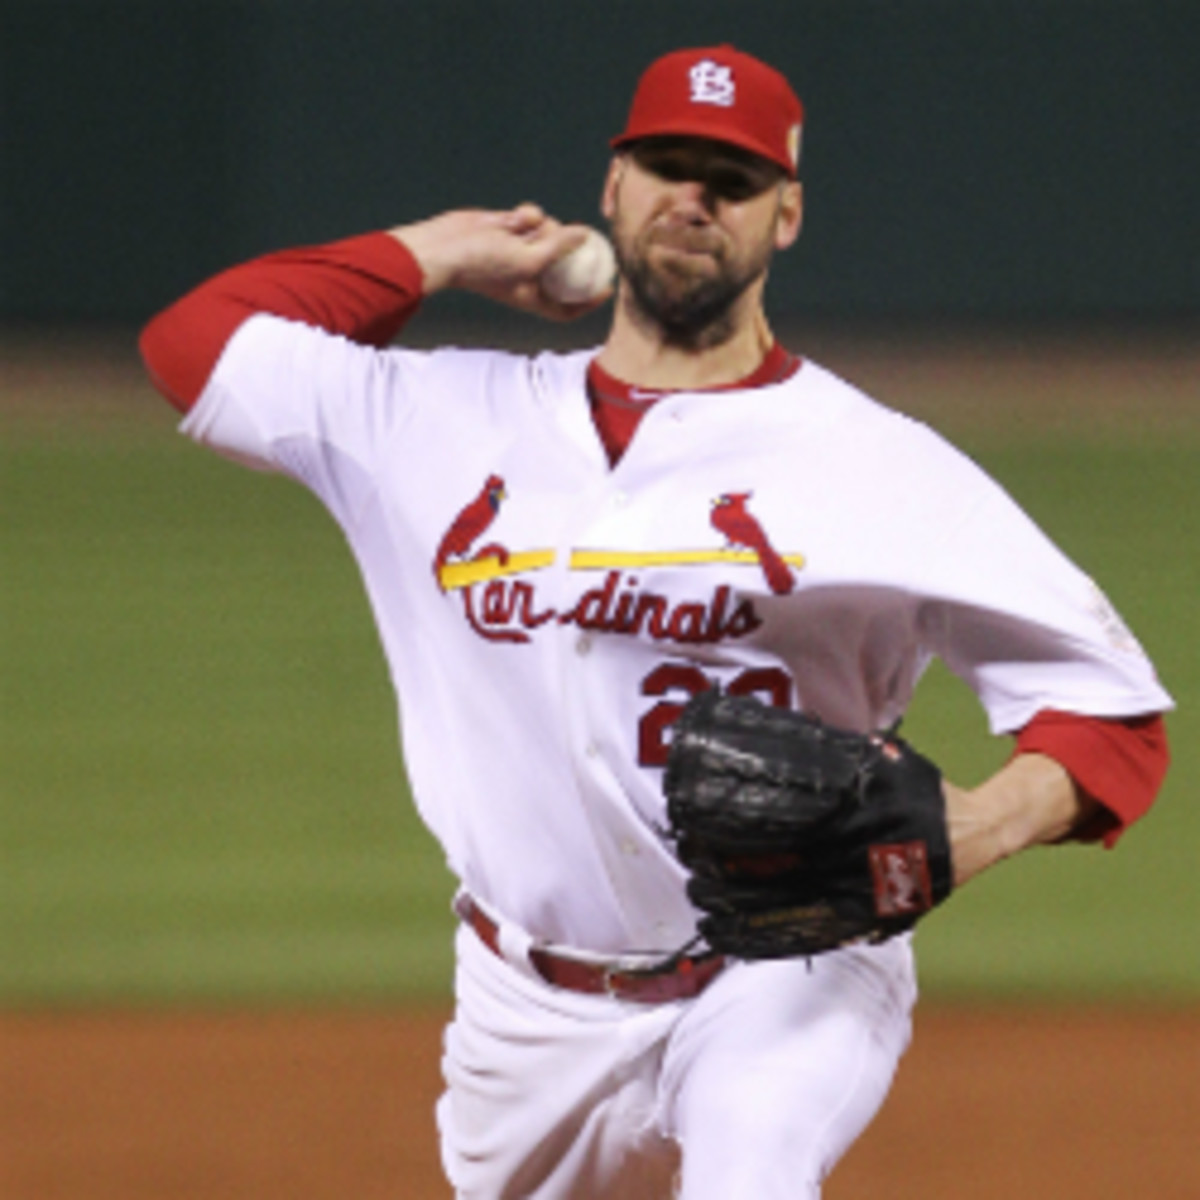 Cardinals pitcher Chris Carpenter says he is doubtful that he will pitch again. (Ezra Shaw/Getty Images)